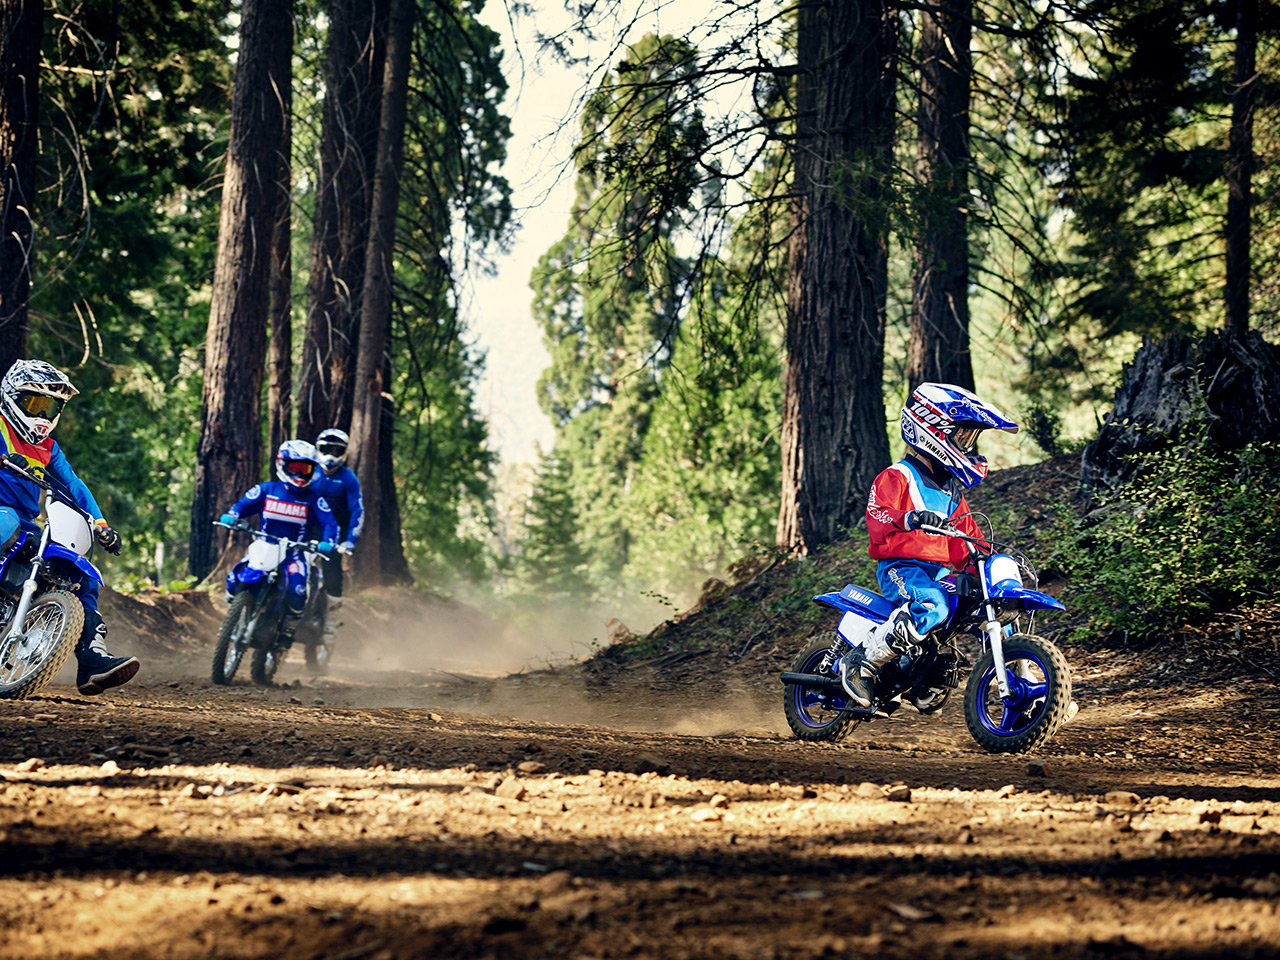 Yamaha PW50 in Team Yamah Blue And white colour, being ridden off-track